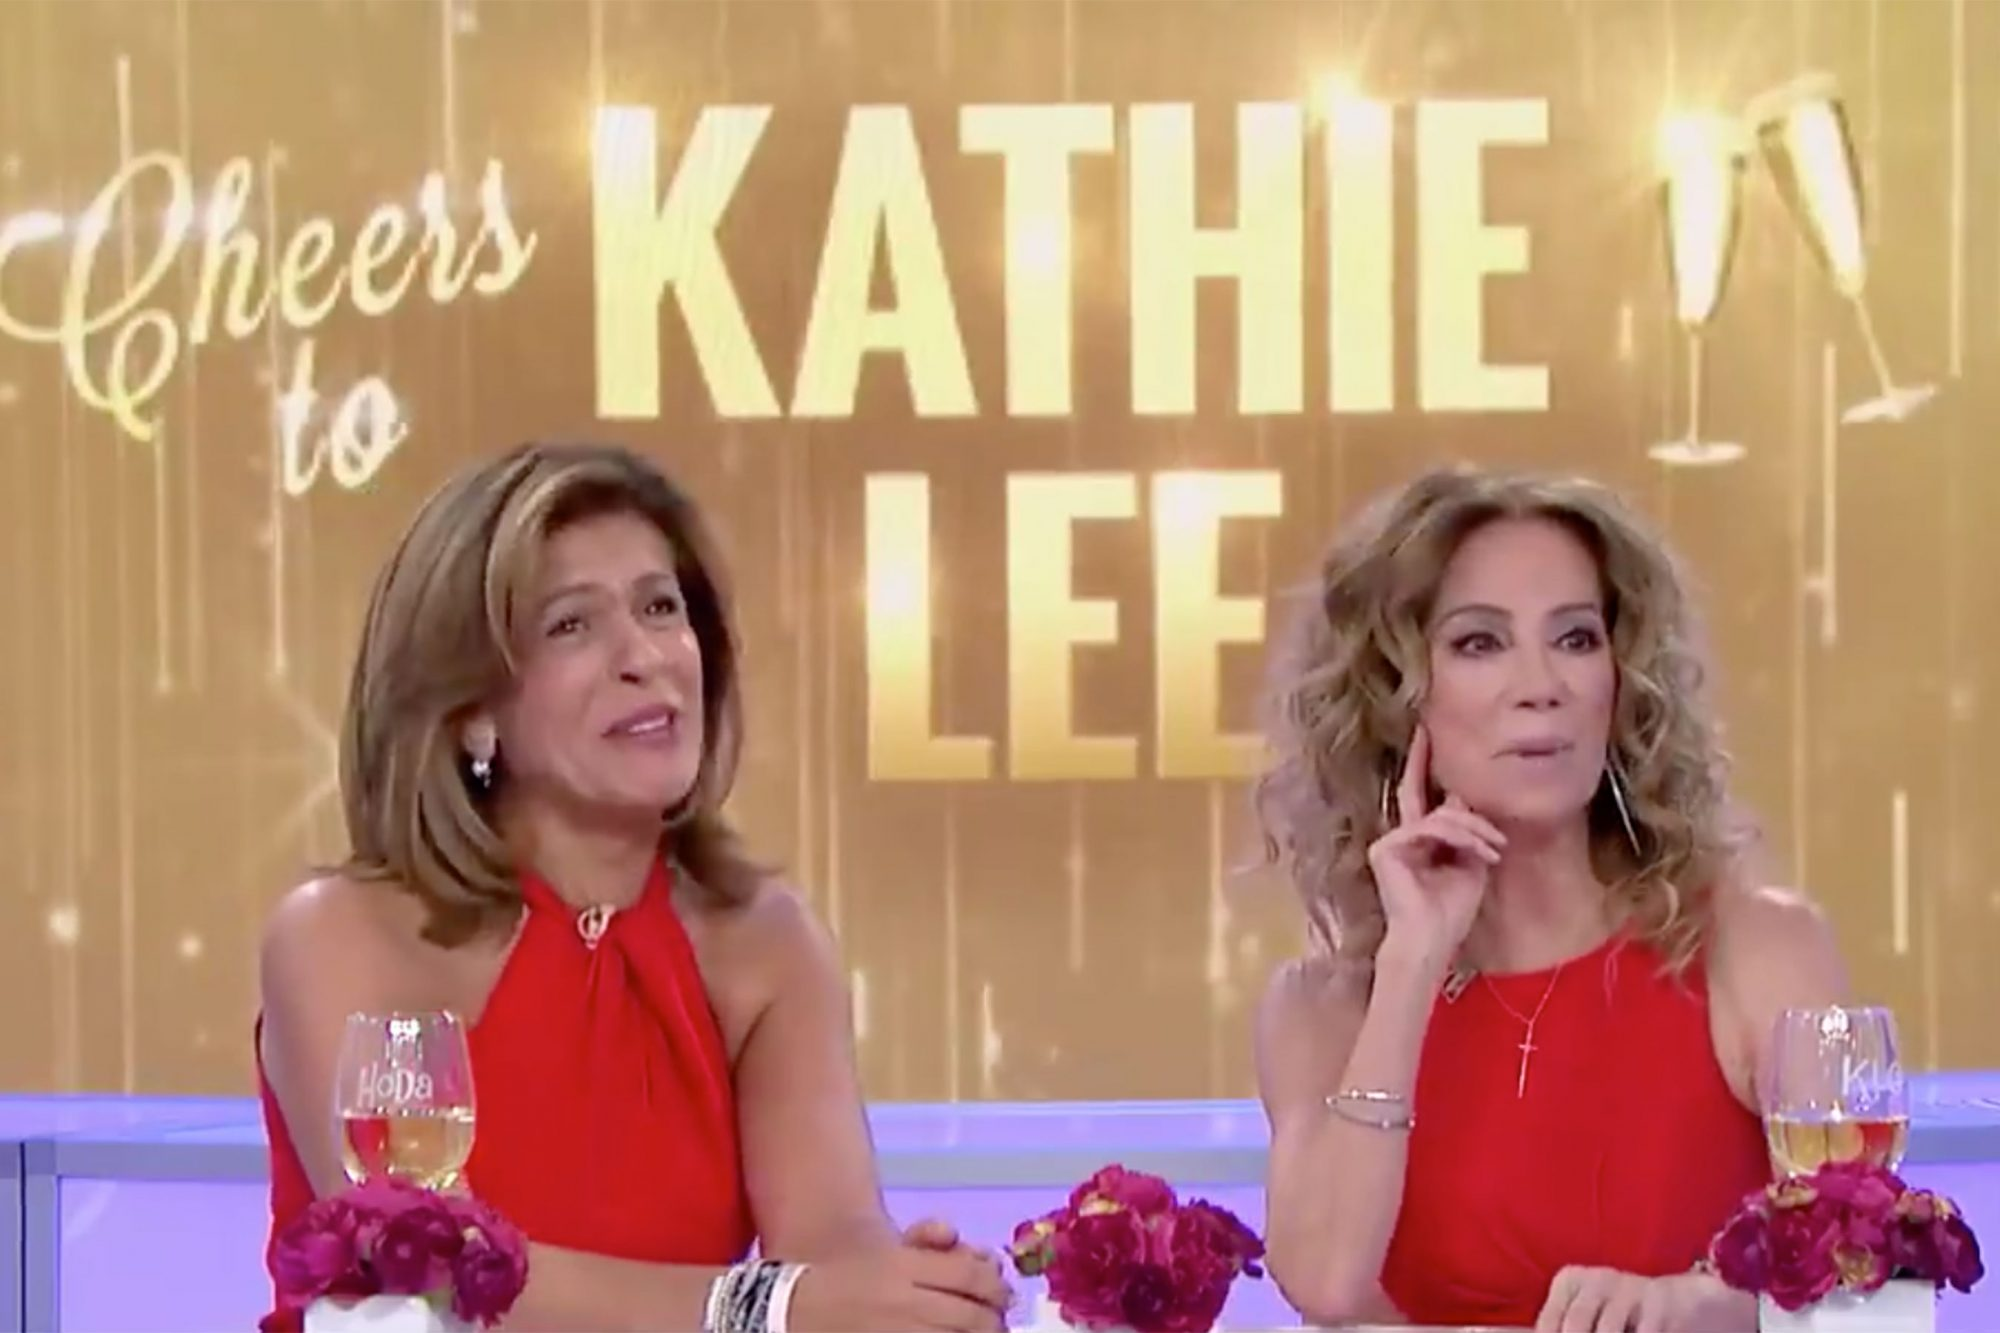 Watch Kathie Lee Gifford and Hoda Kotb Learn the Total Amount of Wine They've Consumed on Today kathie-lee-today